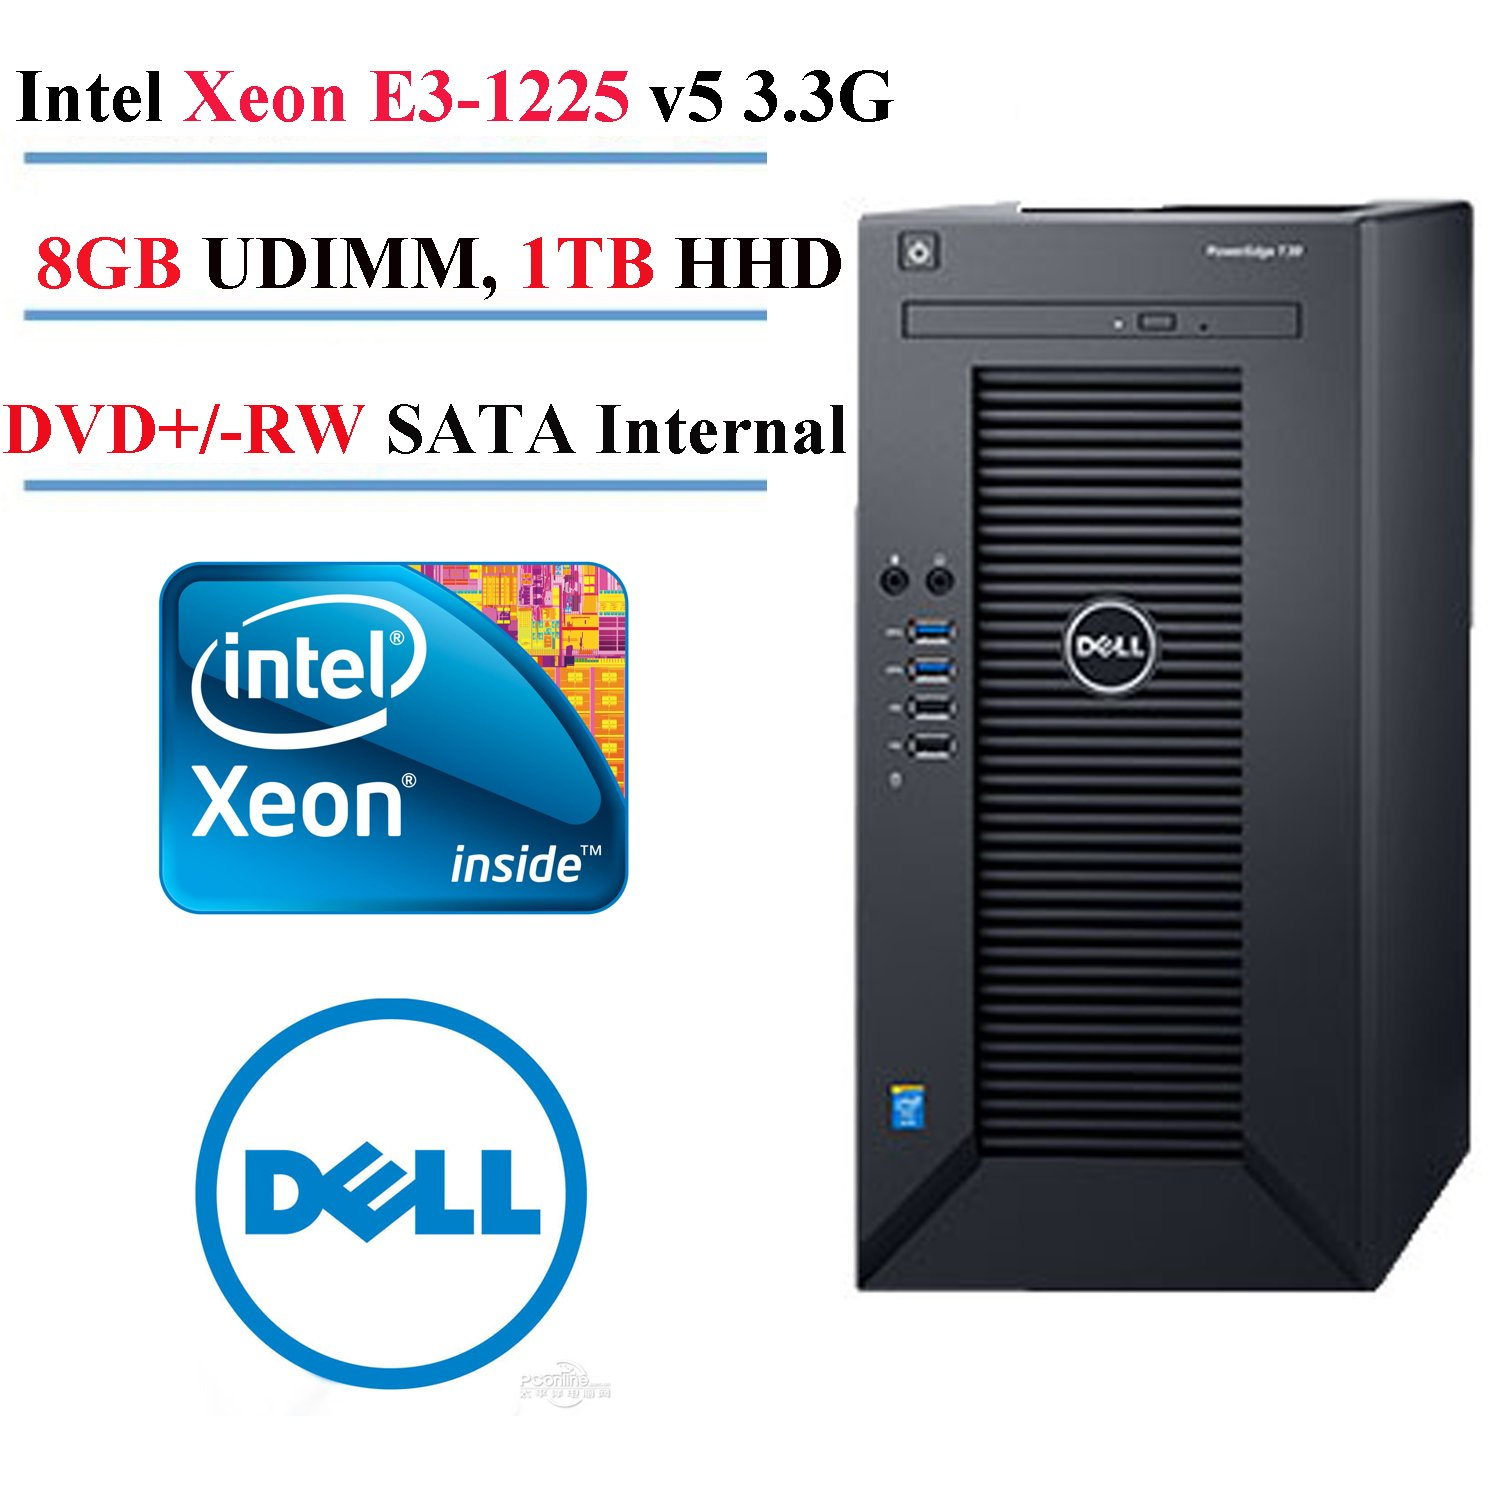 2017 Newest Dell PowerEdge T30 Mini Tower Server Desktop , Intel Xeon E3-1225 v5 3.3G, 8M cache, 8GB UDIMM, 2400MT/s, 1TB Hard Drive by Dell